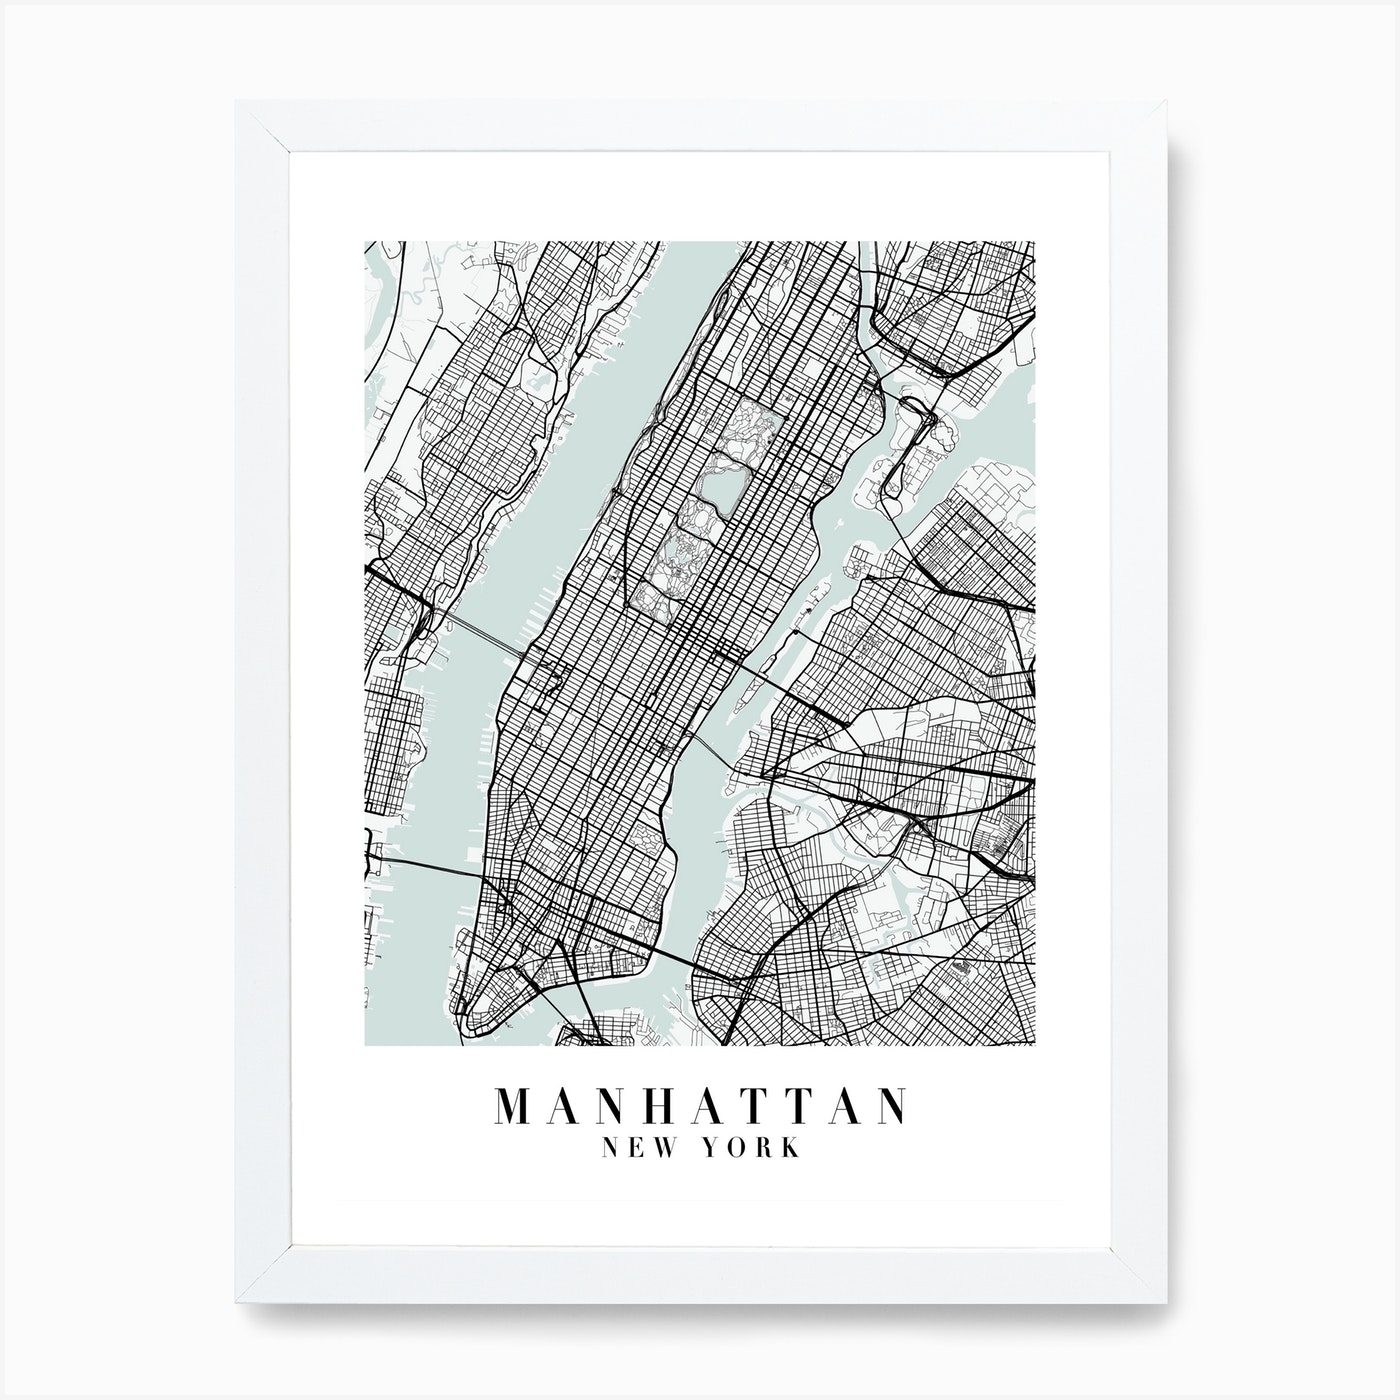 Manhattan New York Street Map Minimal Color Art Print By Typologie Paper Co Fy